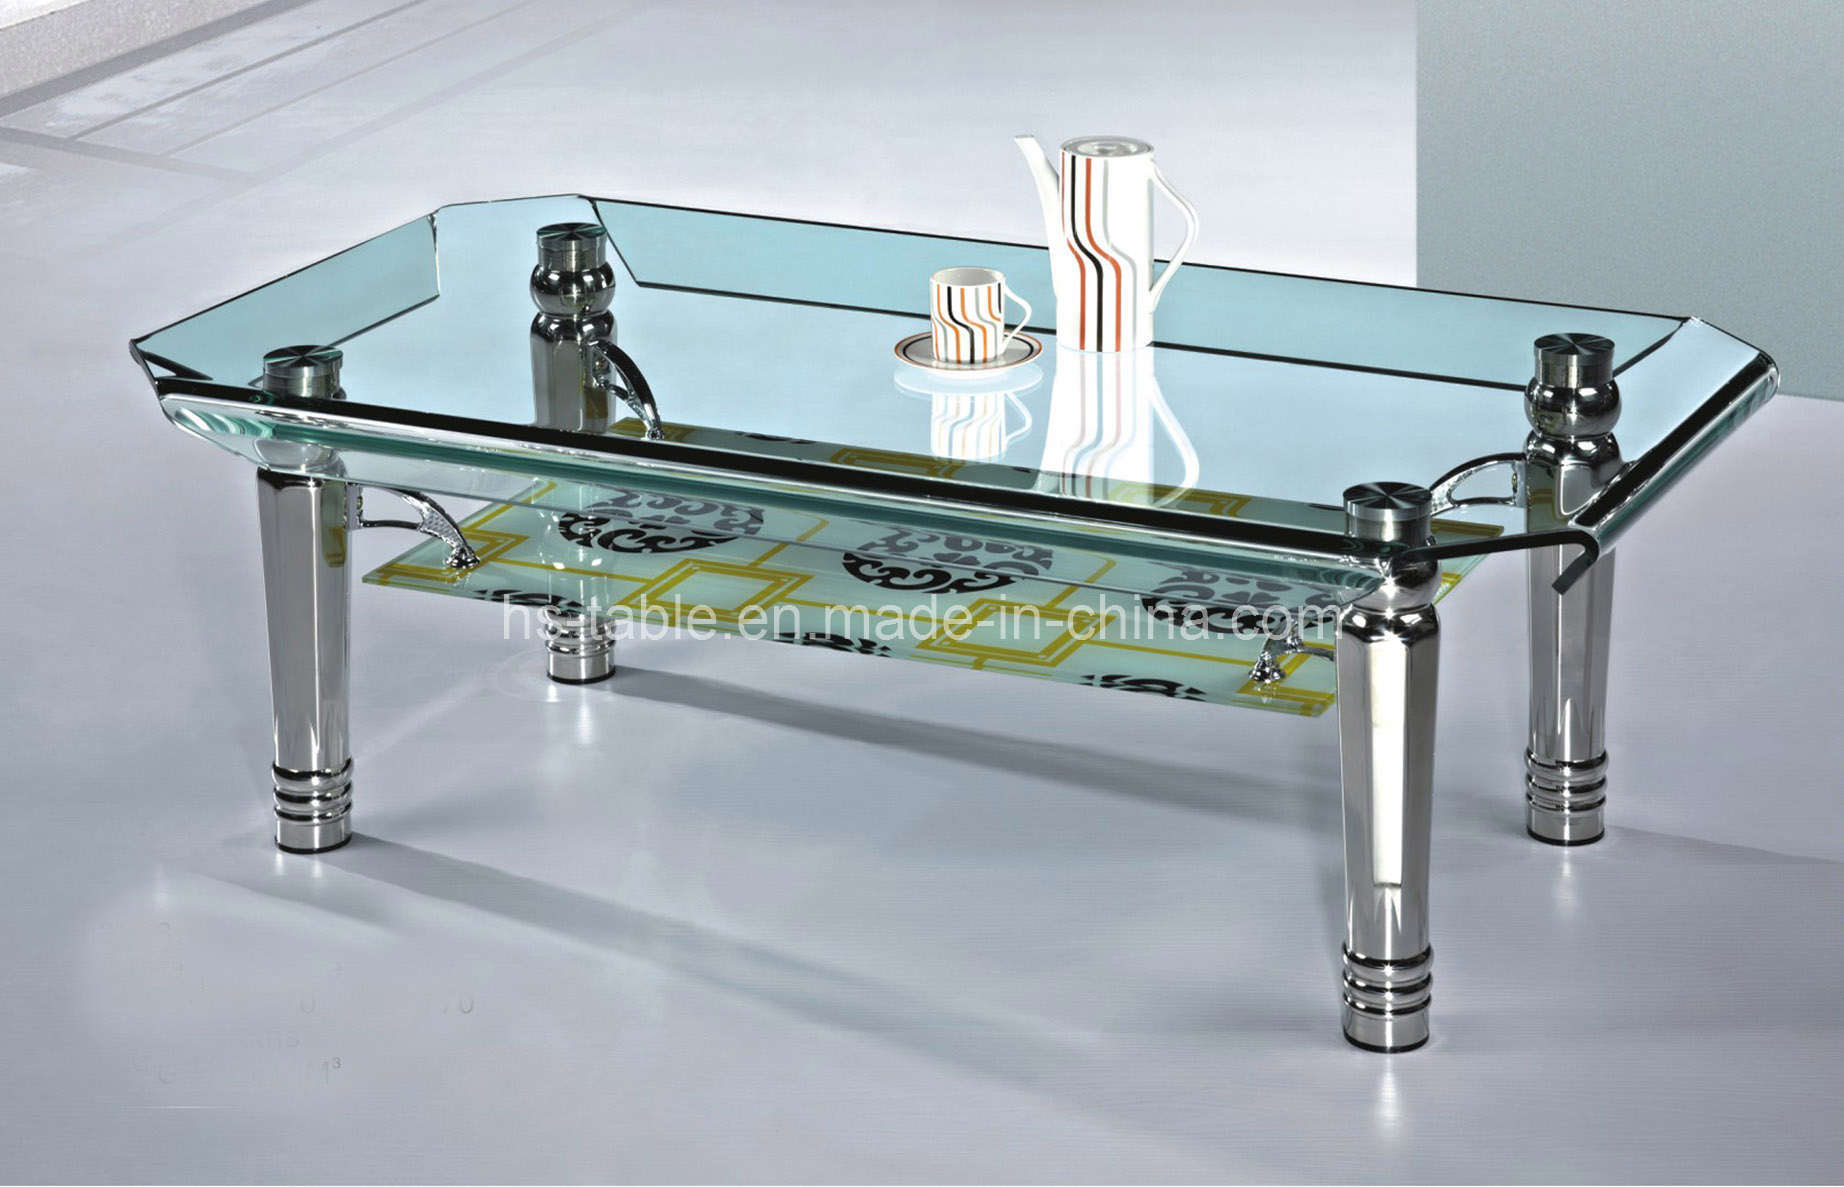 China bend glass top bend glass coffee table 2272 china glass coffee table glass tea table Coffee tables glass